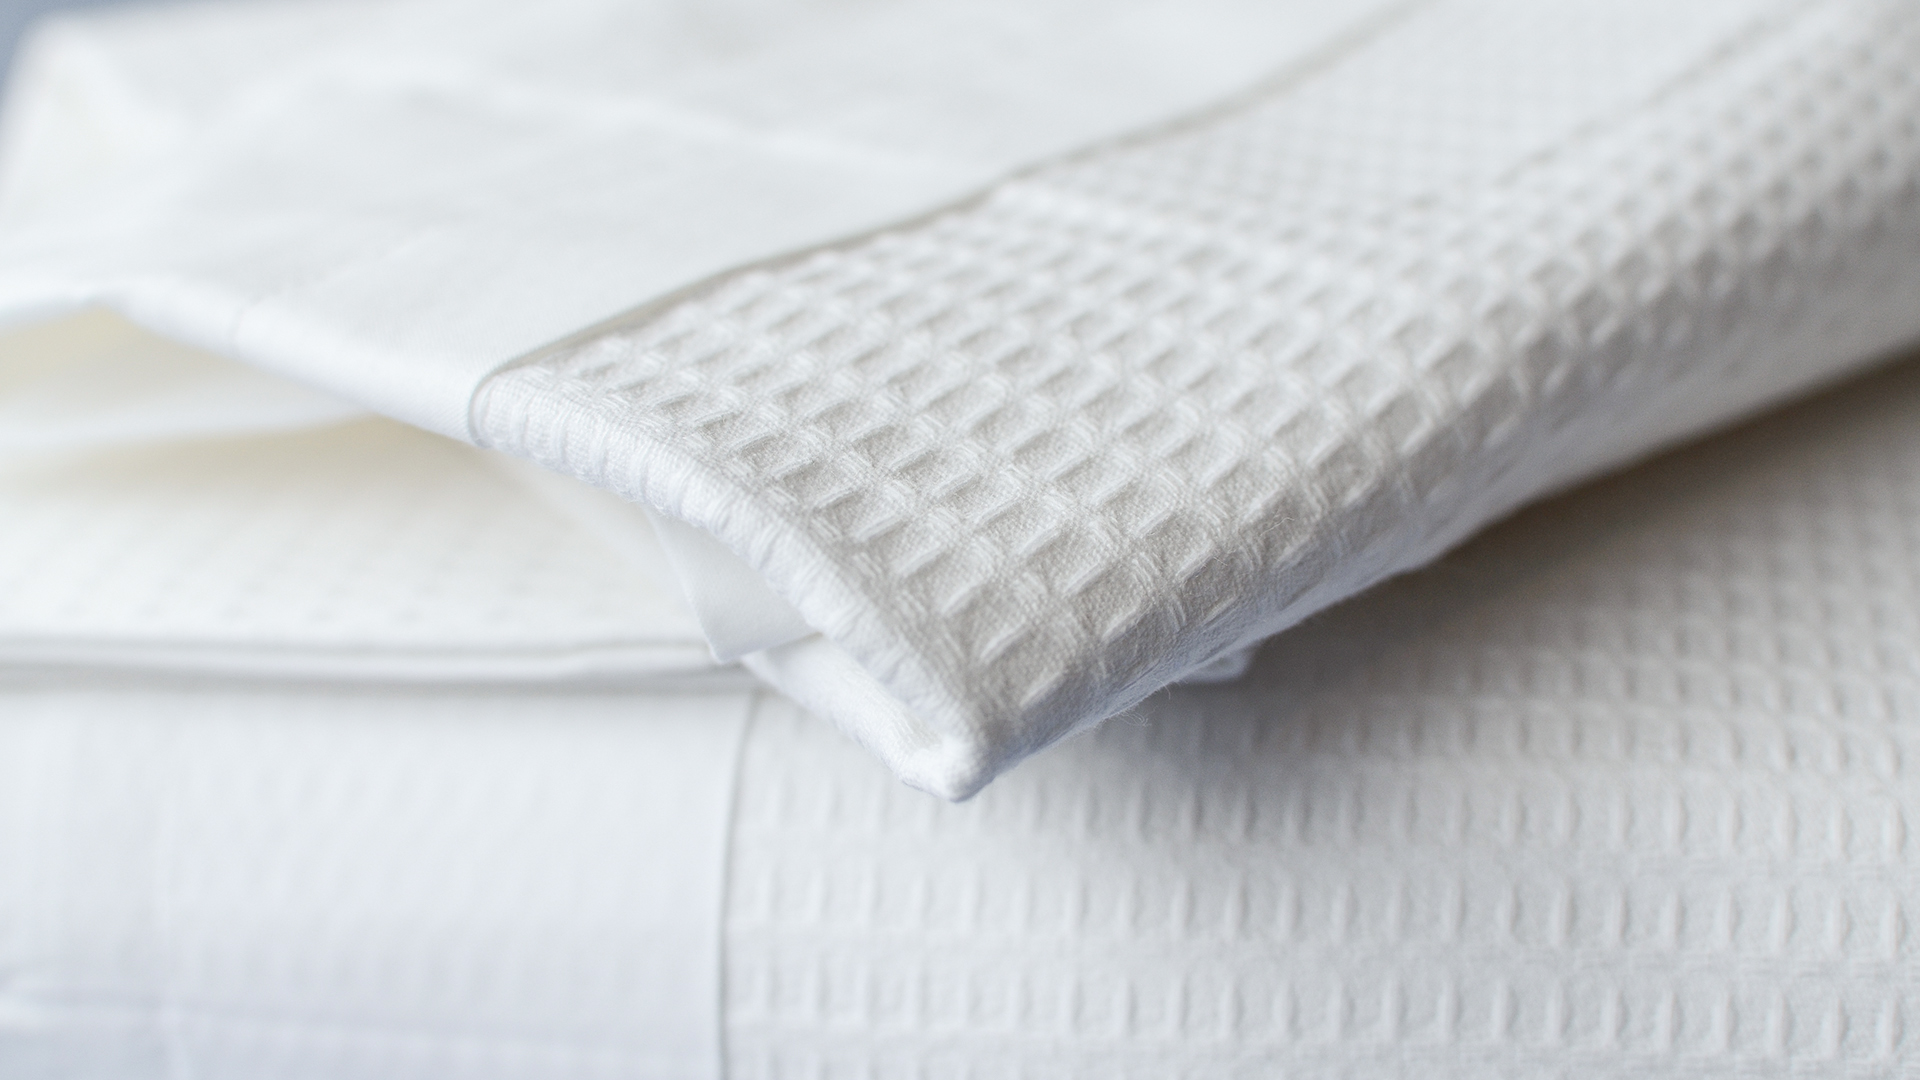 Sofa Bed Latex Mattress Waffle Cotton Bedding | Pure Cotton Bedding | Natural Bed